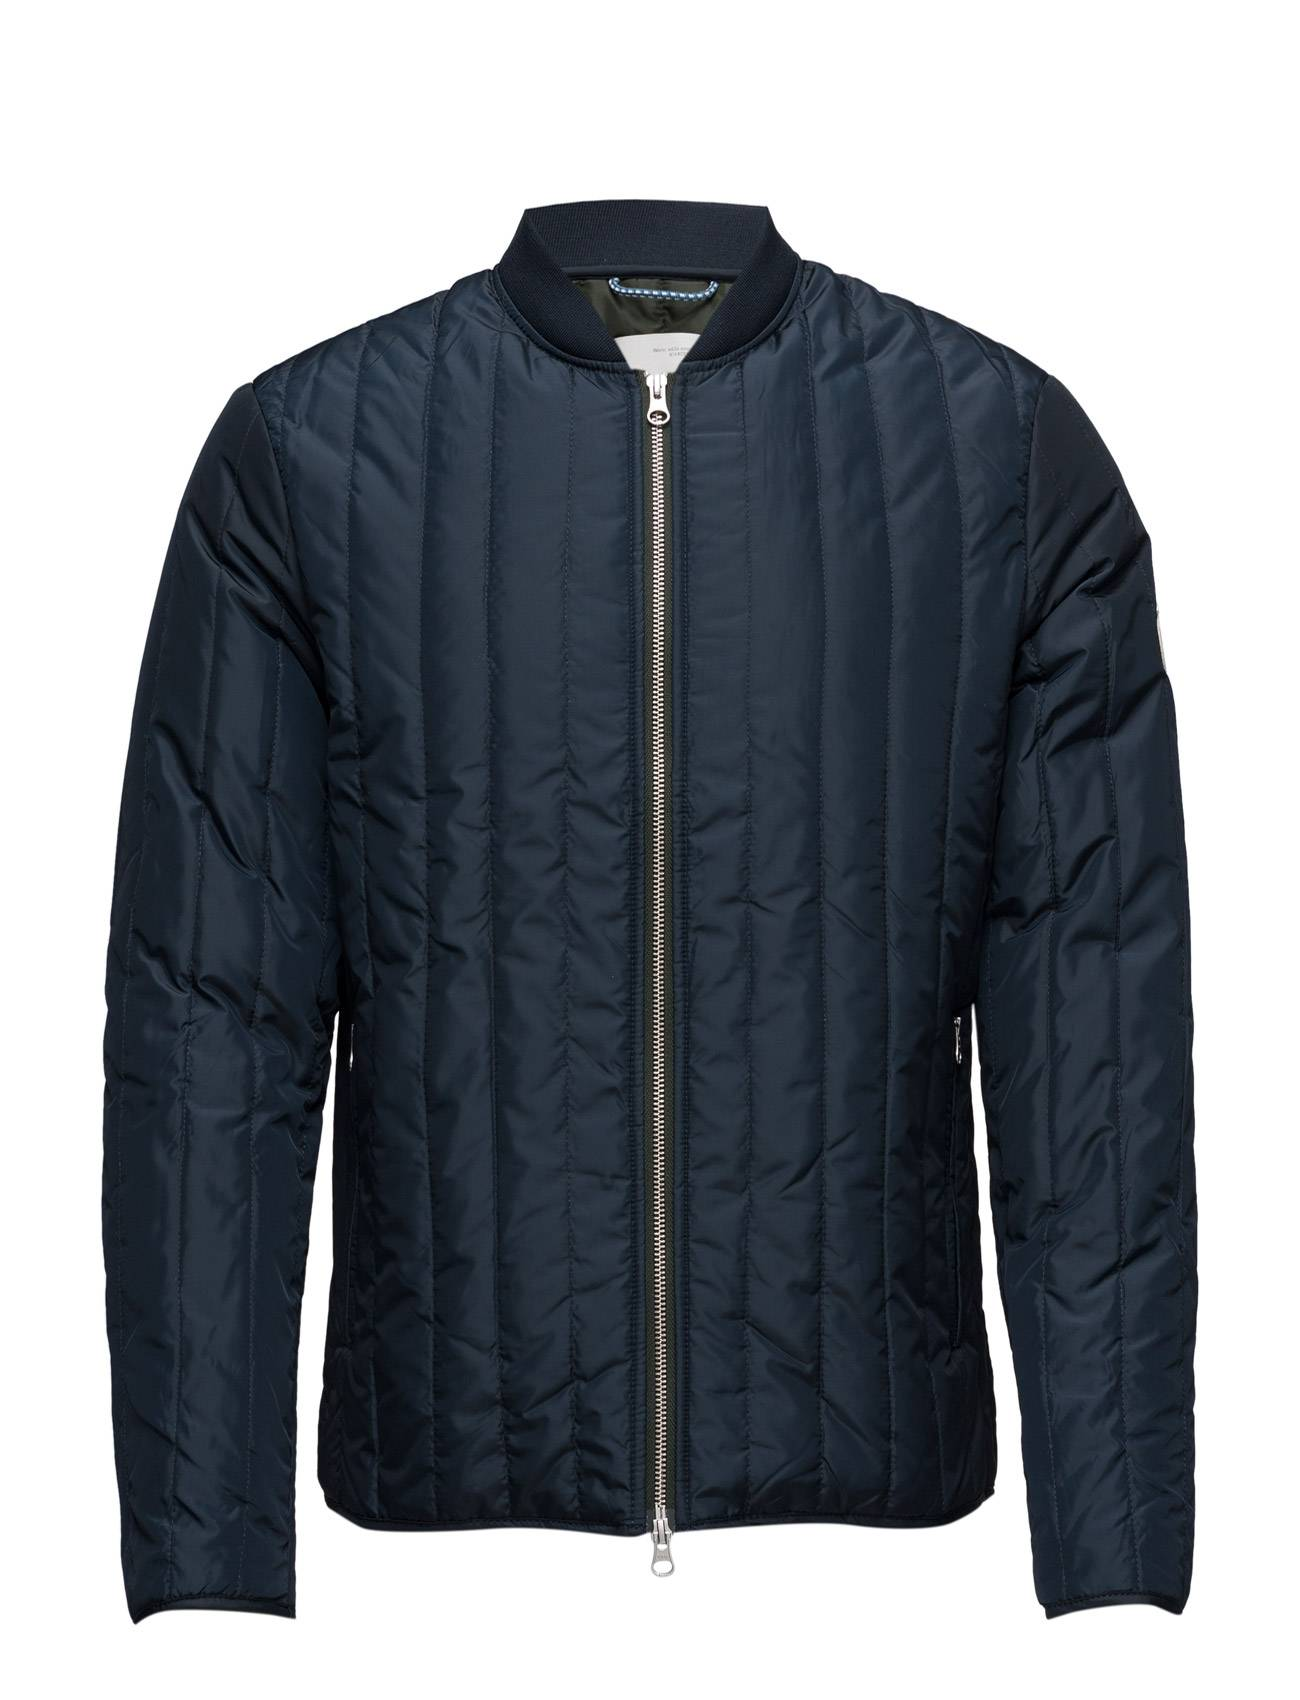 Knowledge Cotton Apparel Quilted Worker Jacket